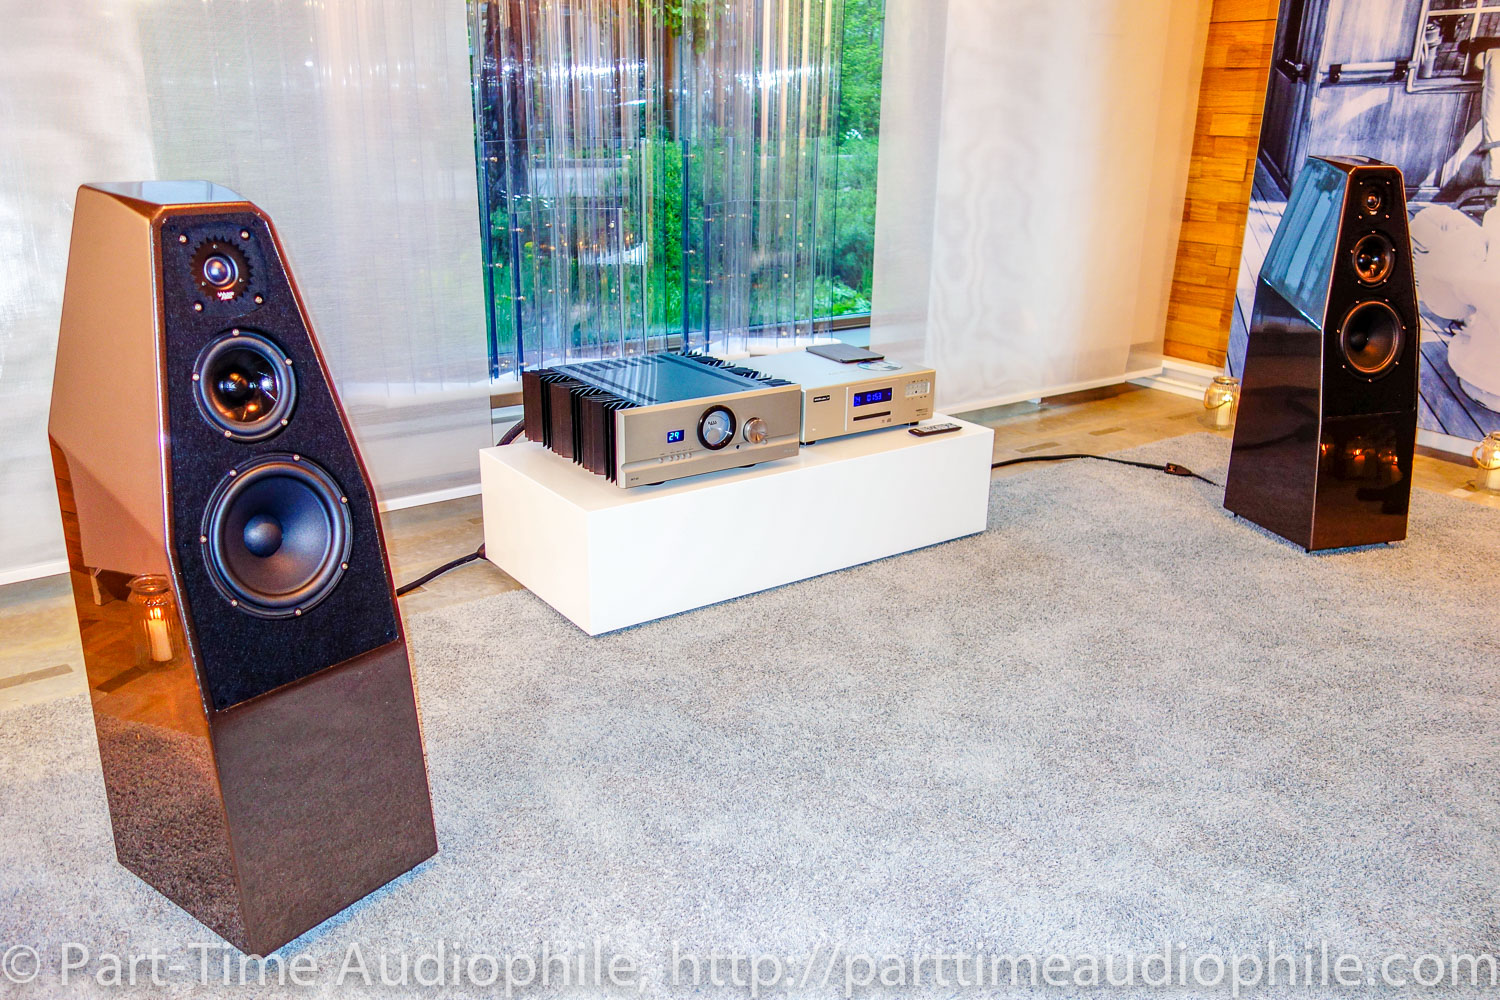 Audion receiver moreover Solar Collector Facts likewise Discussion T18044 ds658544 additionally Tesslor R 601S Retro Vacuum Tube AM FM Bluetooth Radio Review furthermore 1ad 2004 1. on vacuum tube receiver